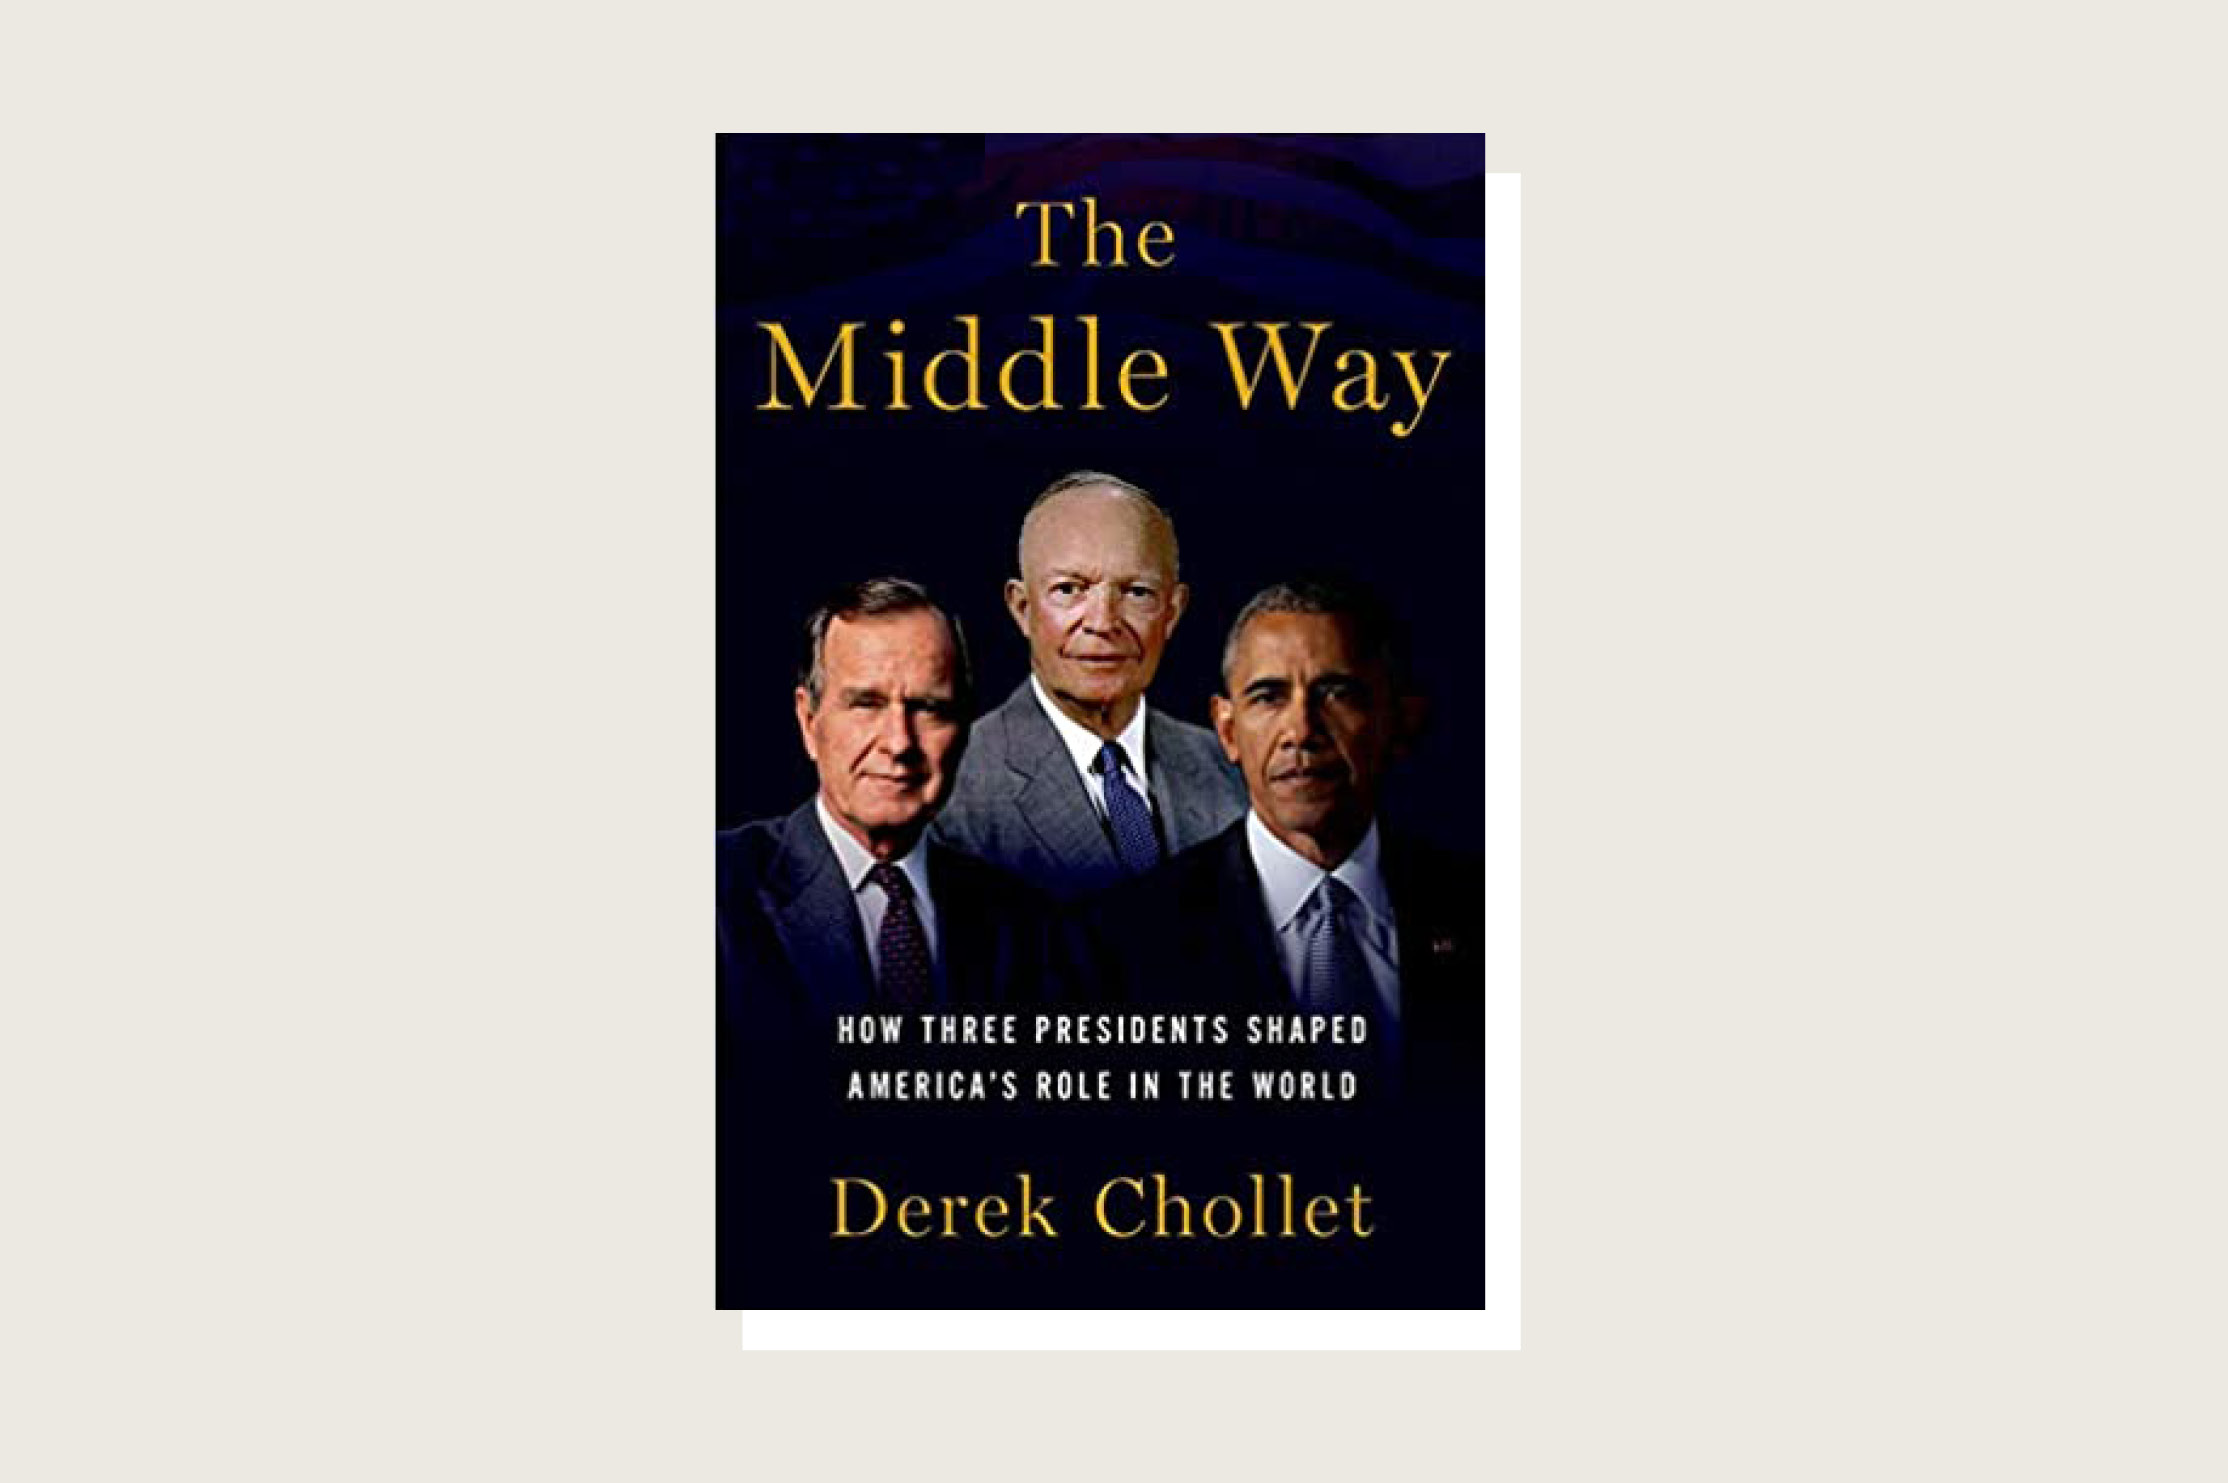 <em>The Middle Way: How Three Presidents Shaped America's Role in the World</em>, Derek Chollet, Oxford University Press, 256 pp., .95, January 2021